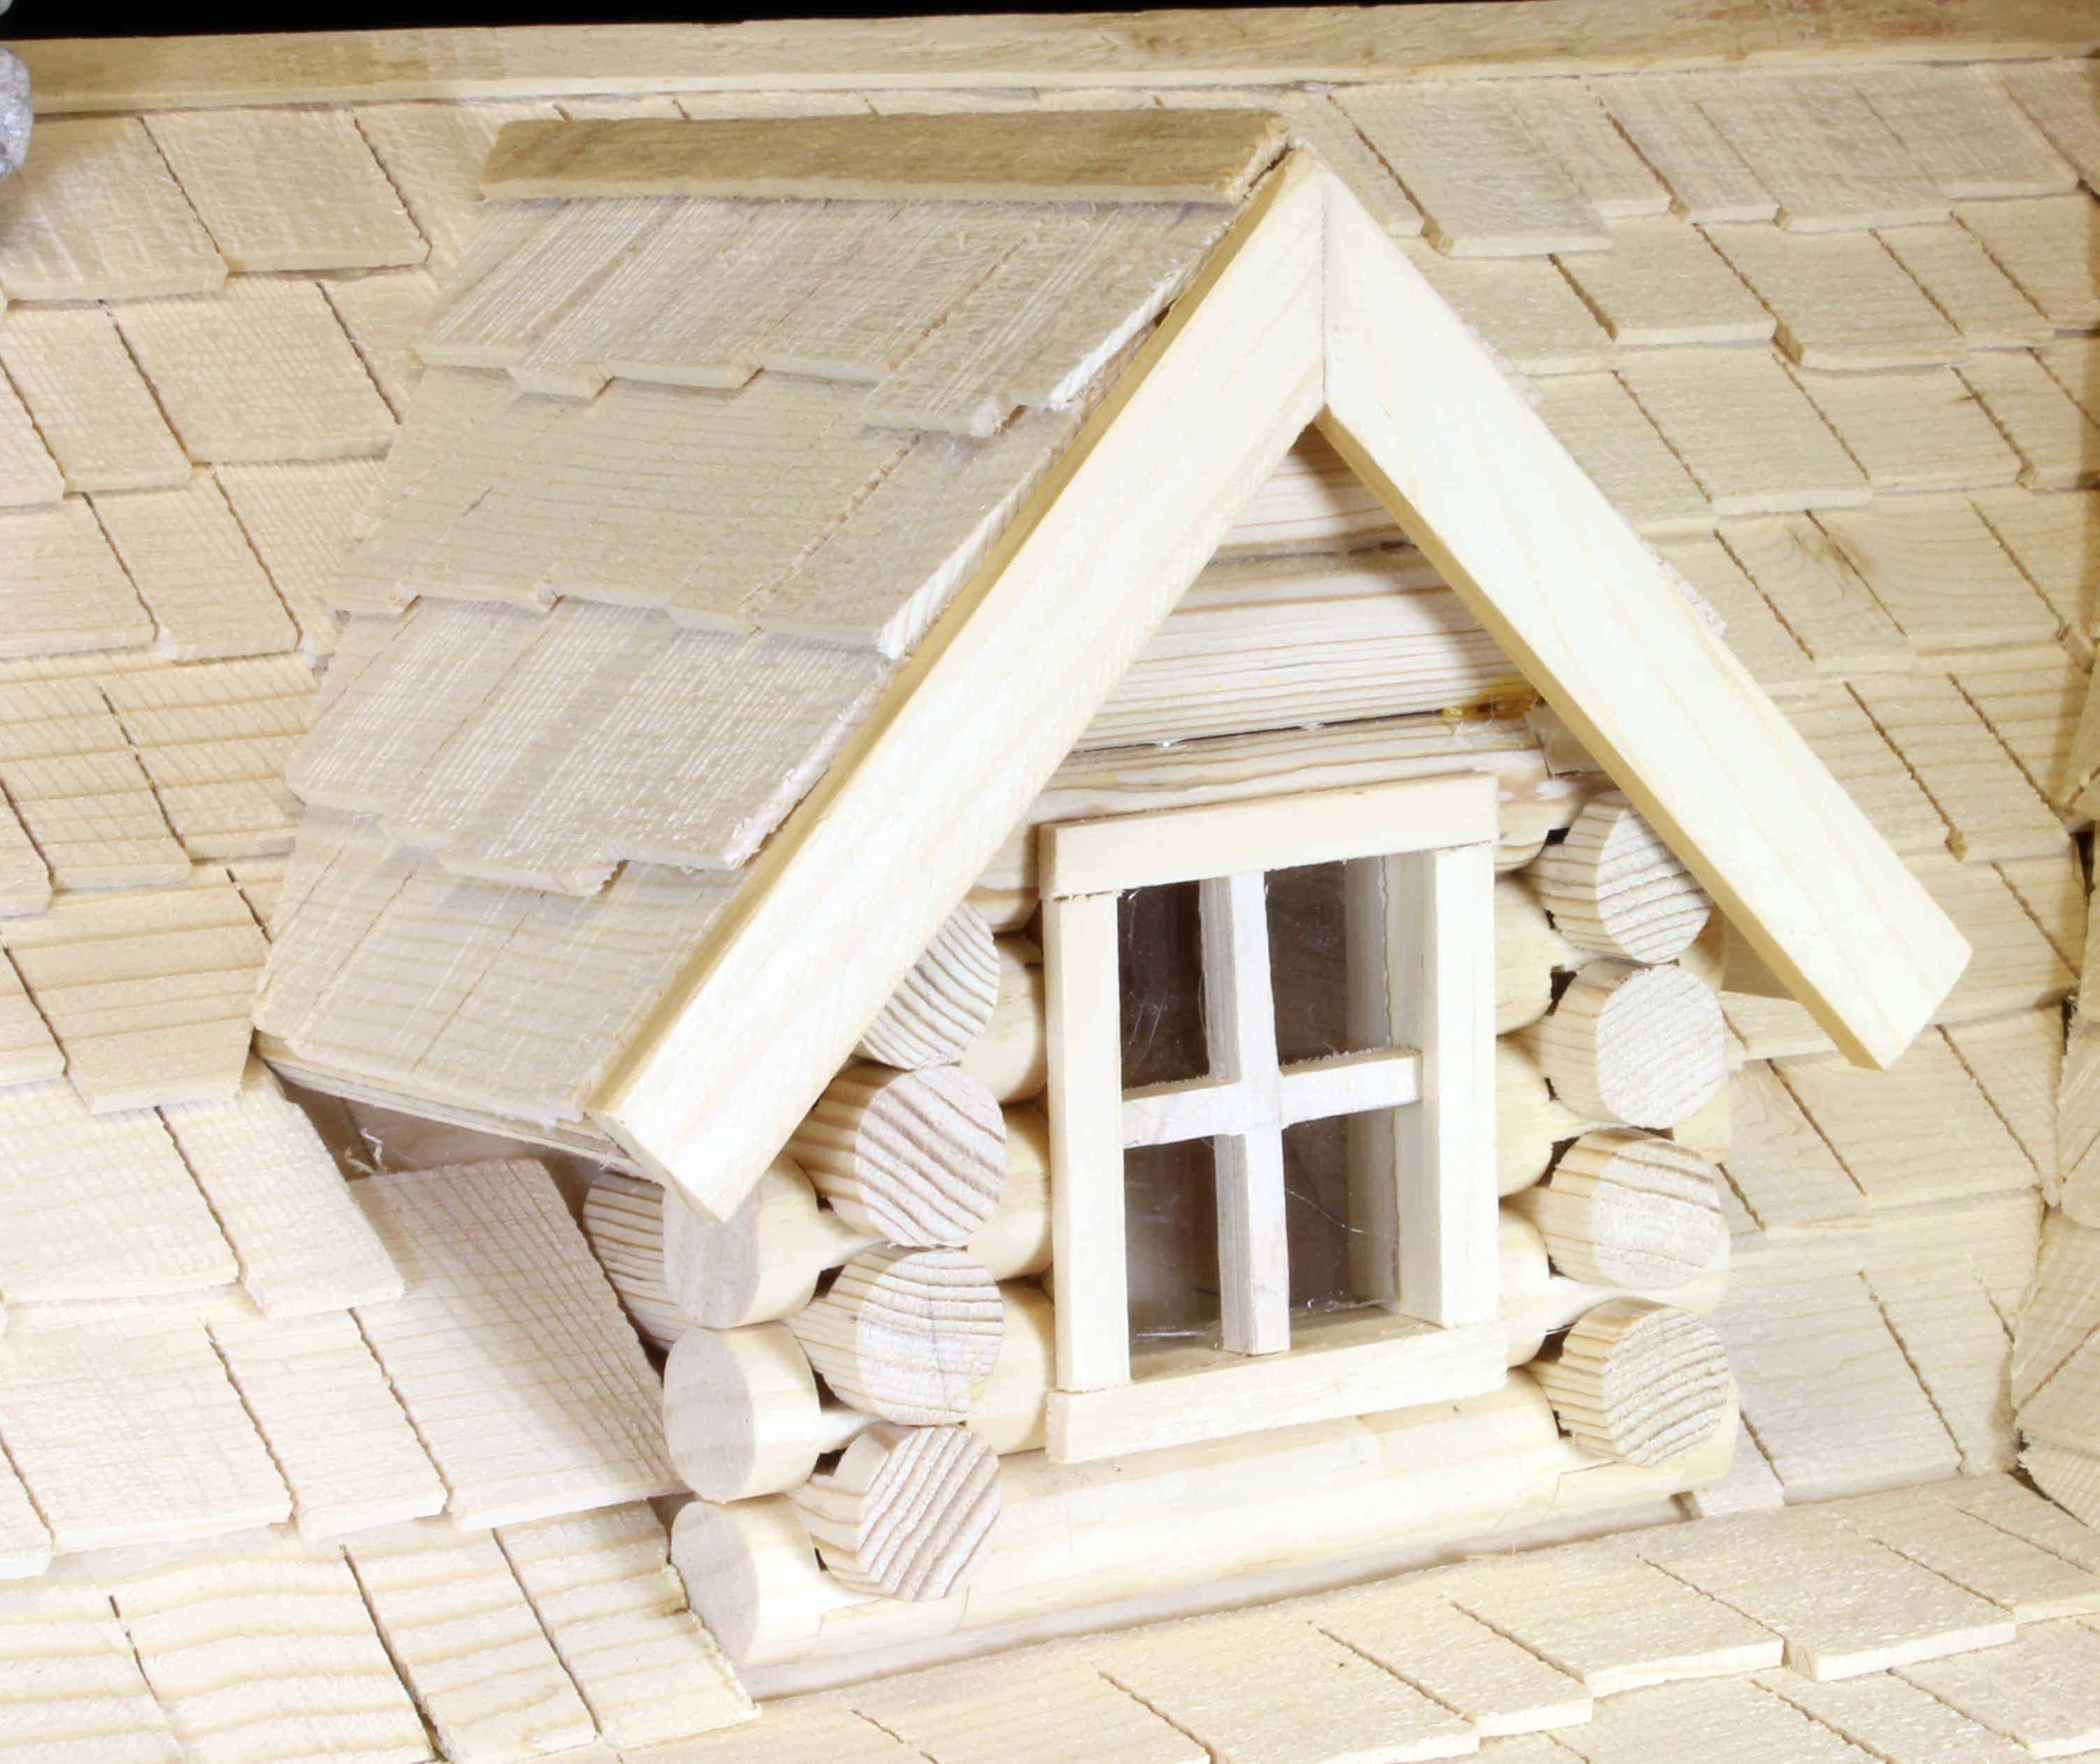 Two dormers are at the front of the cabin explained in the full size woodworking plans